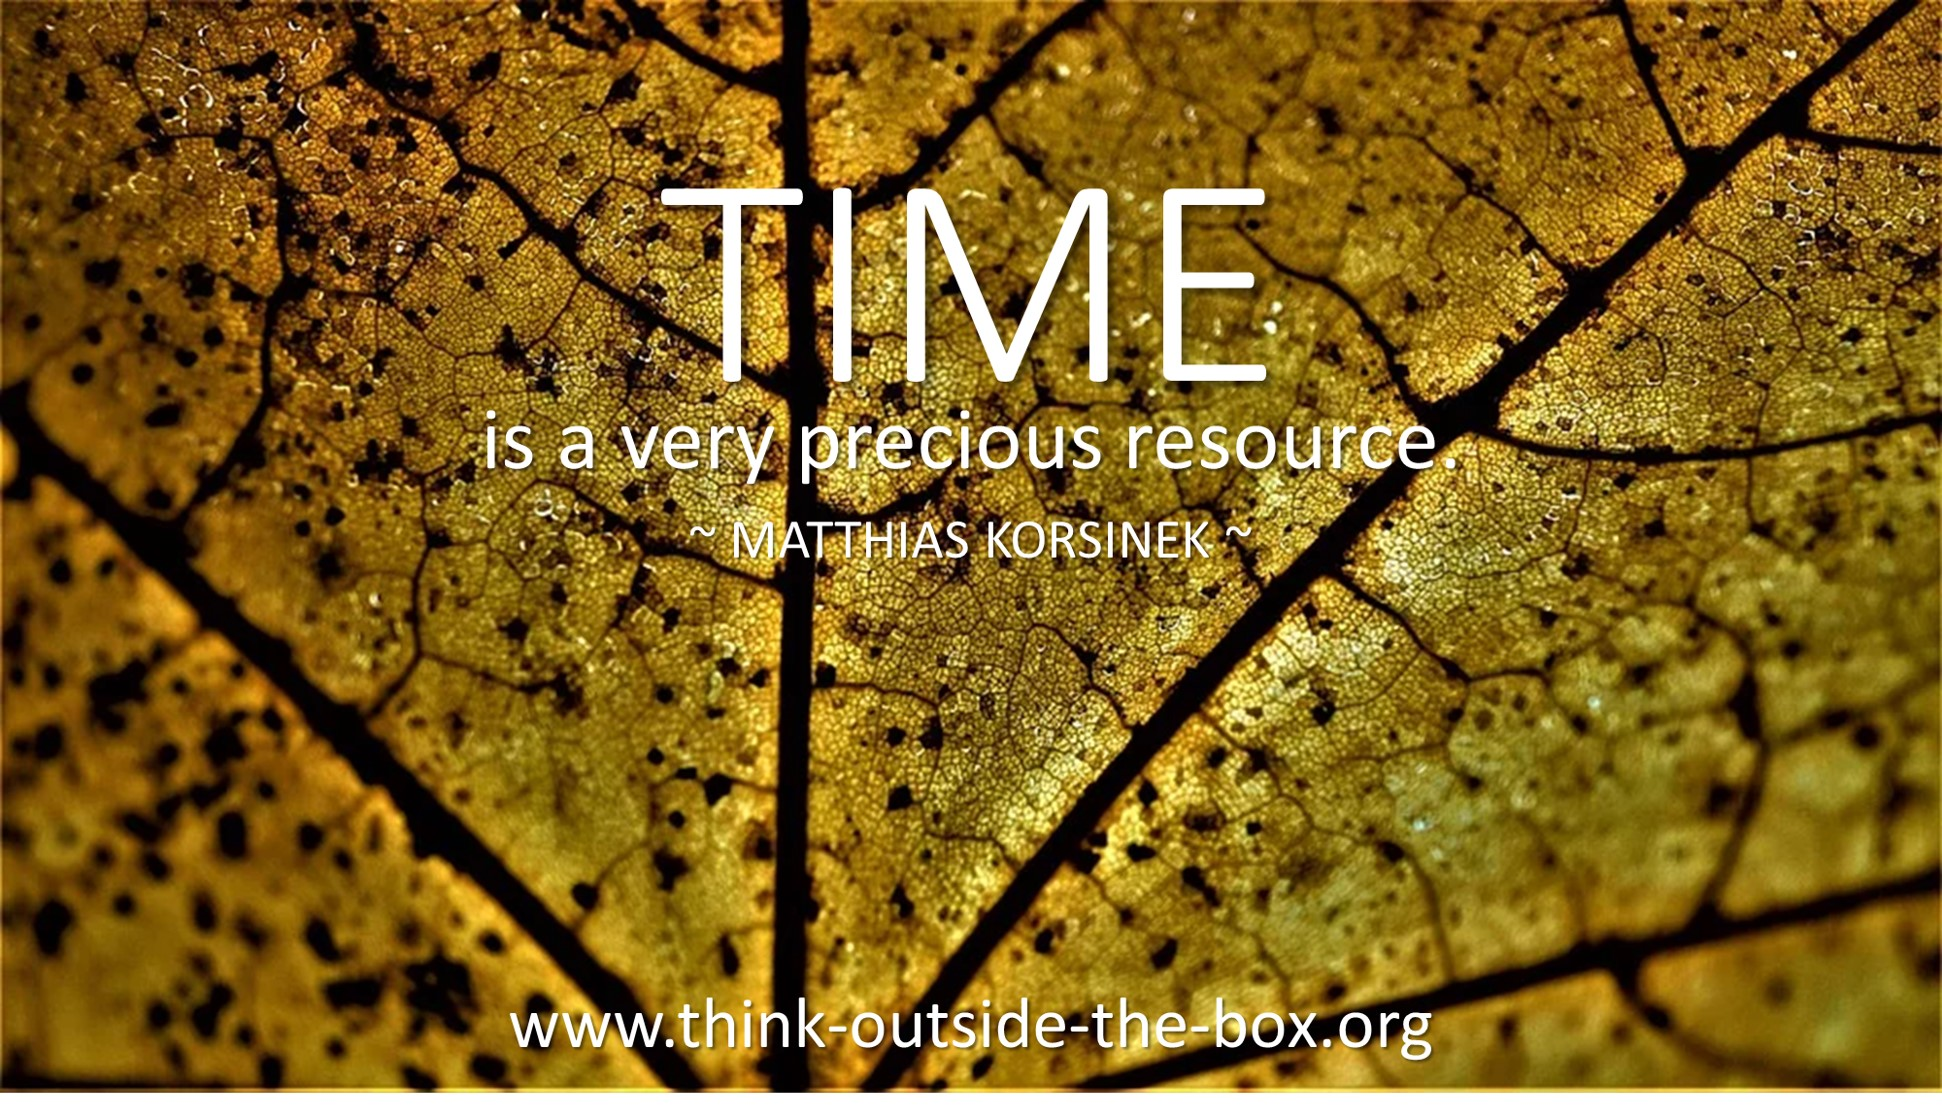 TIME is a very precious resource